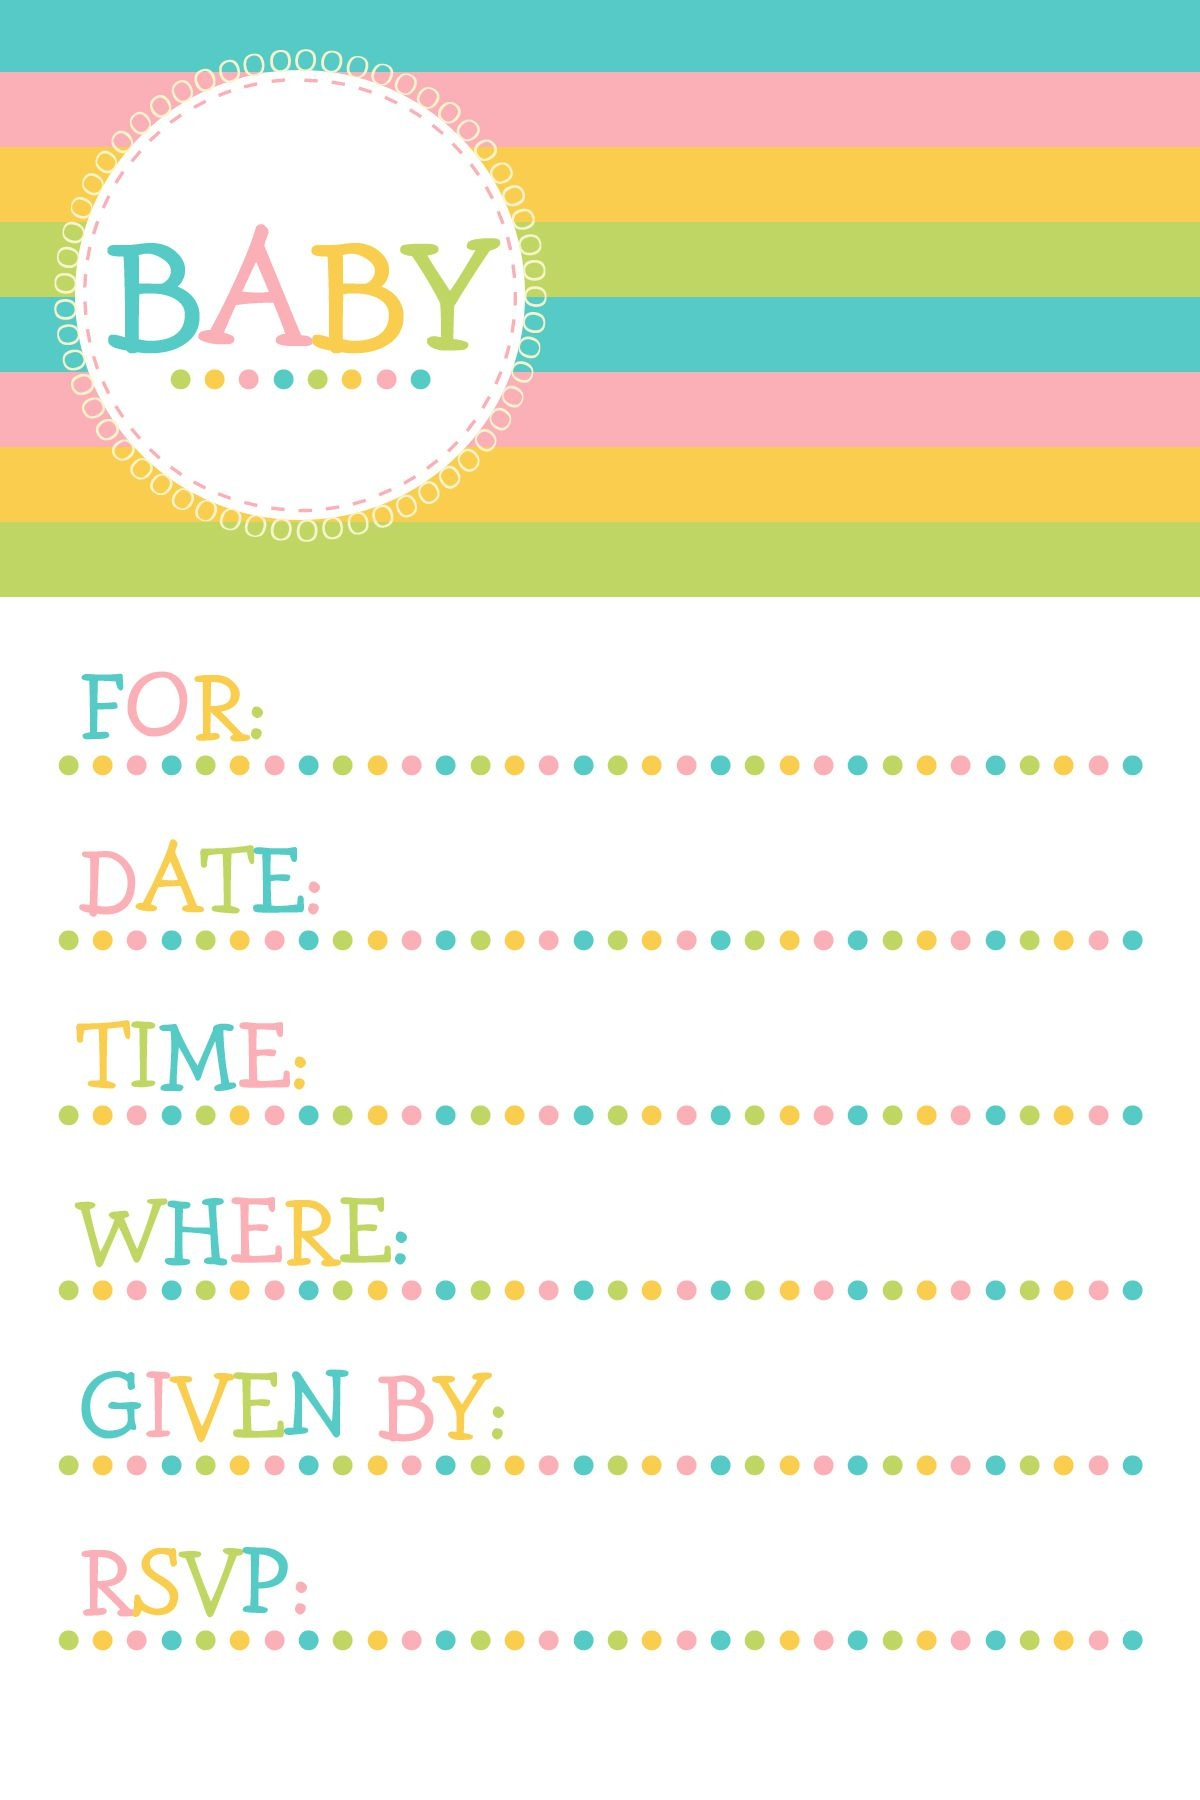 25 Adorable Free Printable Baby Shower Invitations - Free Printable Baby Shower Cards Templates